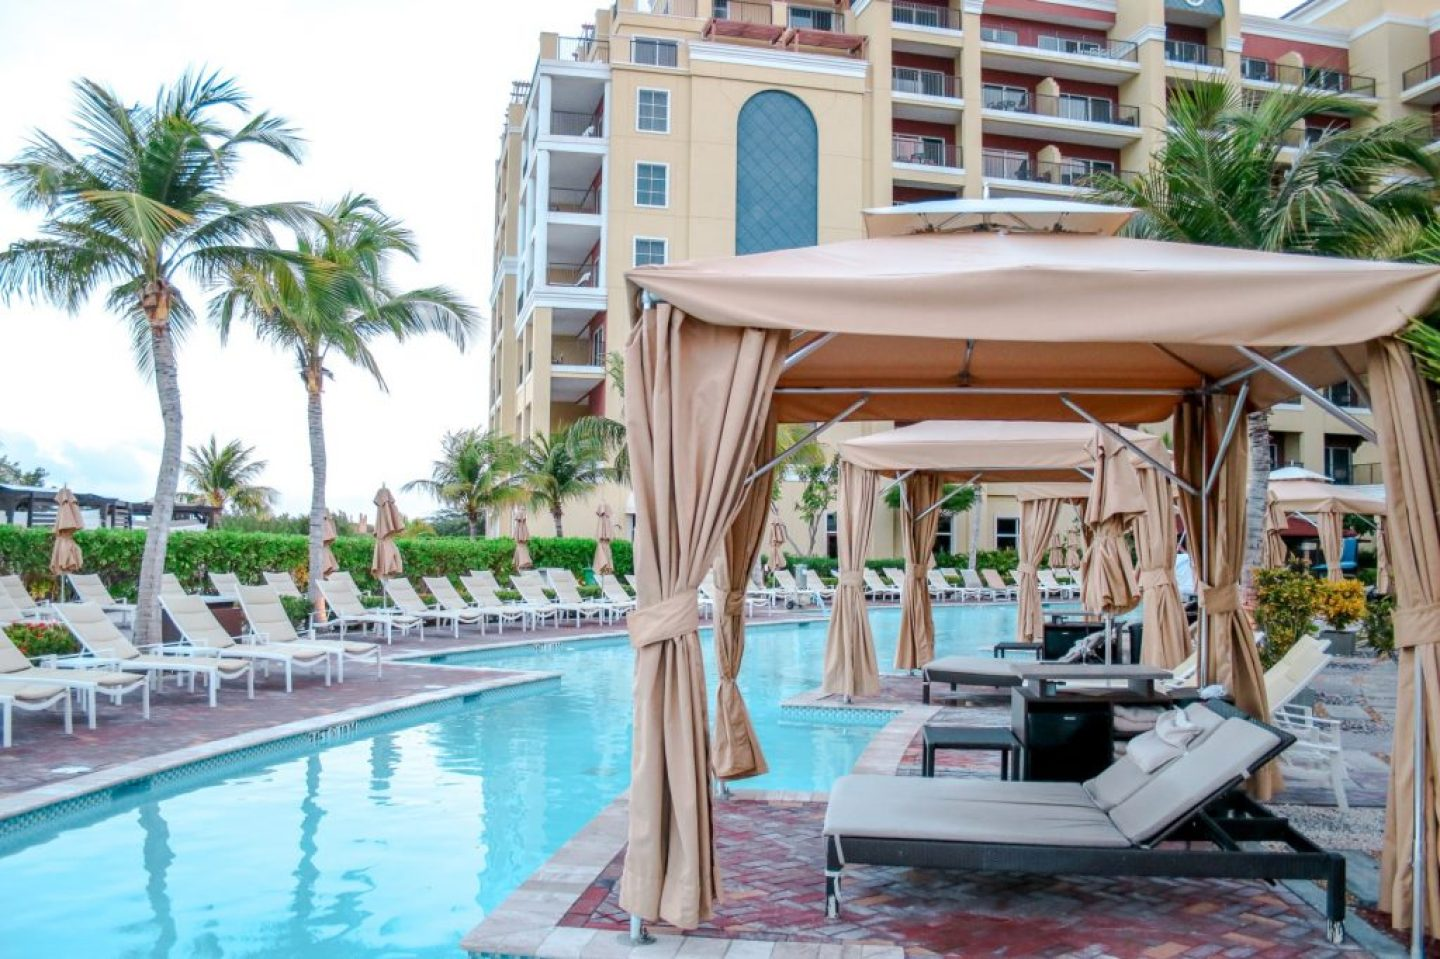 Where To Stay In Aruba: ritz carlton pool cabana